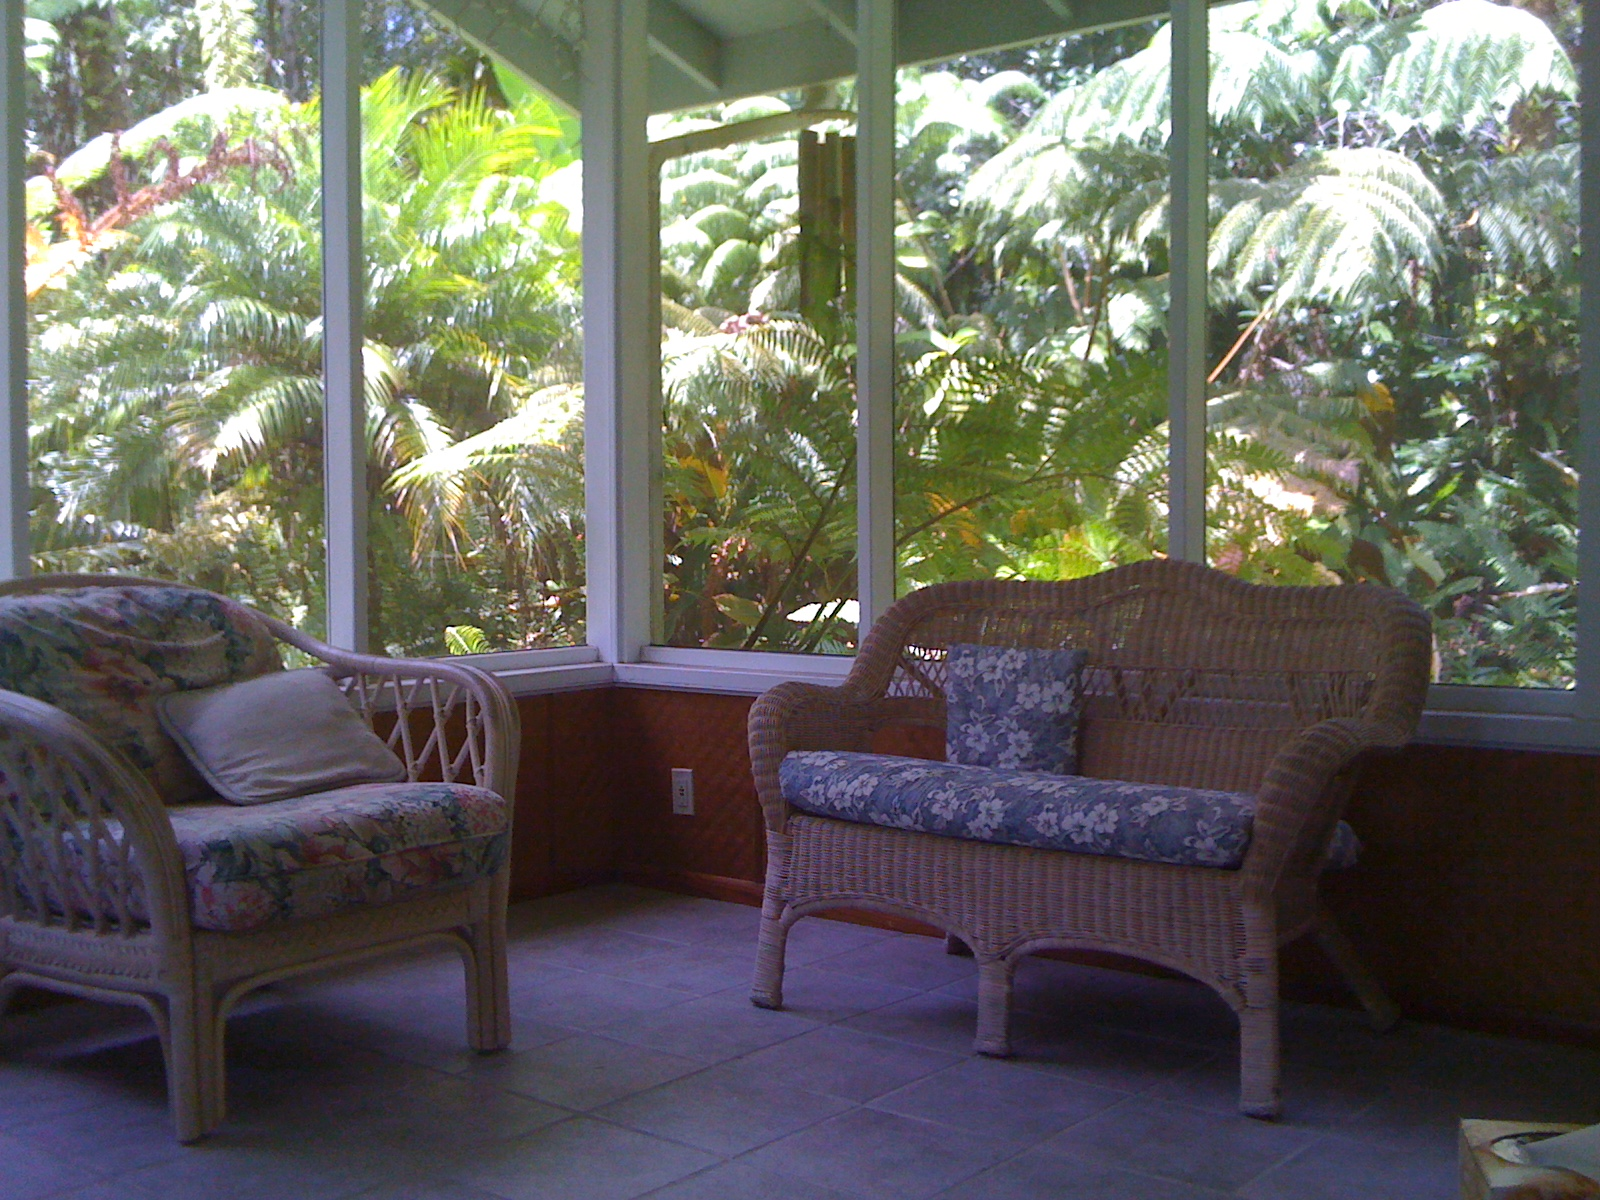 Beautiful sun room, Pahoa hawaii. Photo credit Erika Ginnis inbreath.com/housecleansing.htm